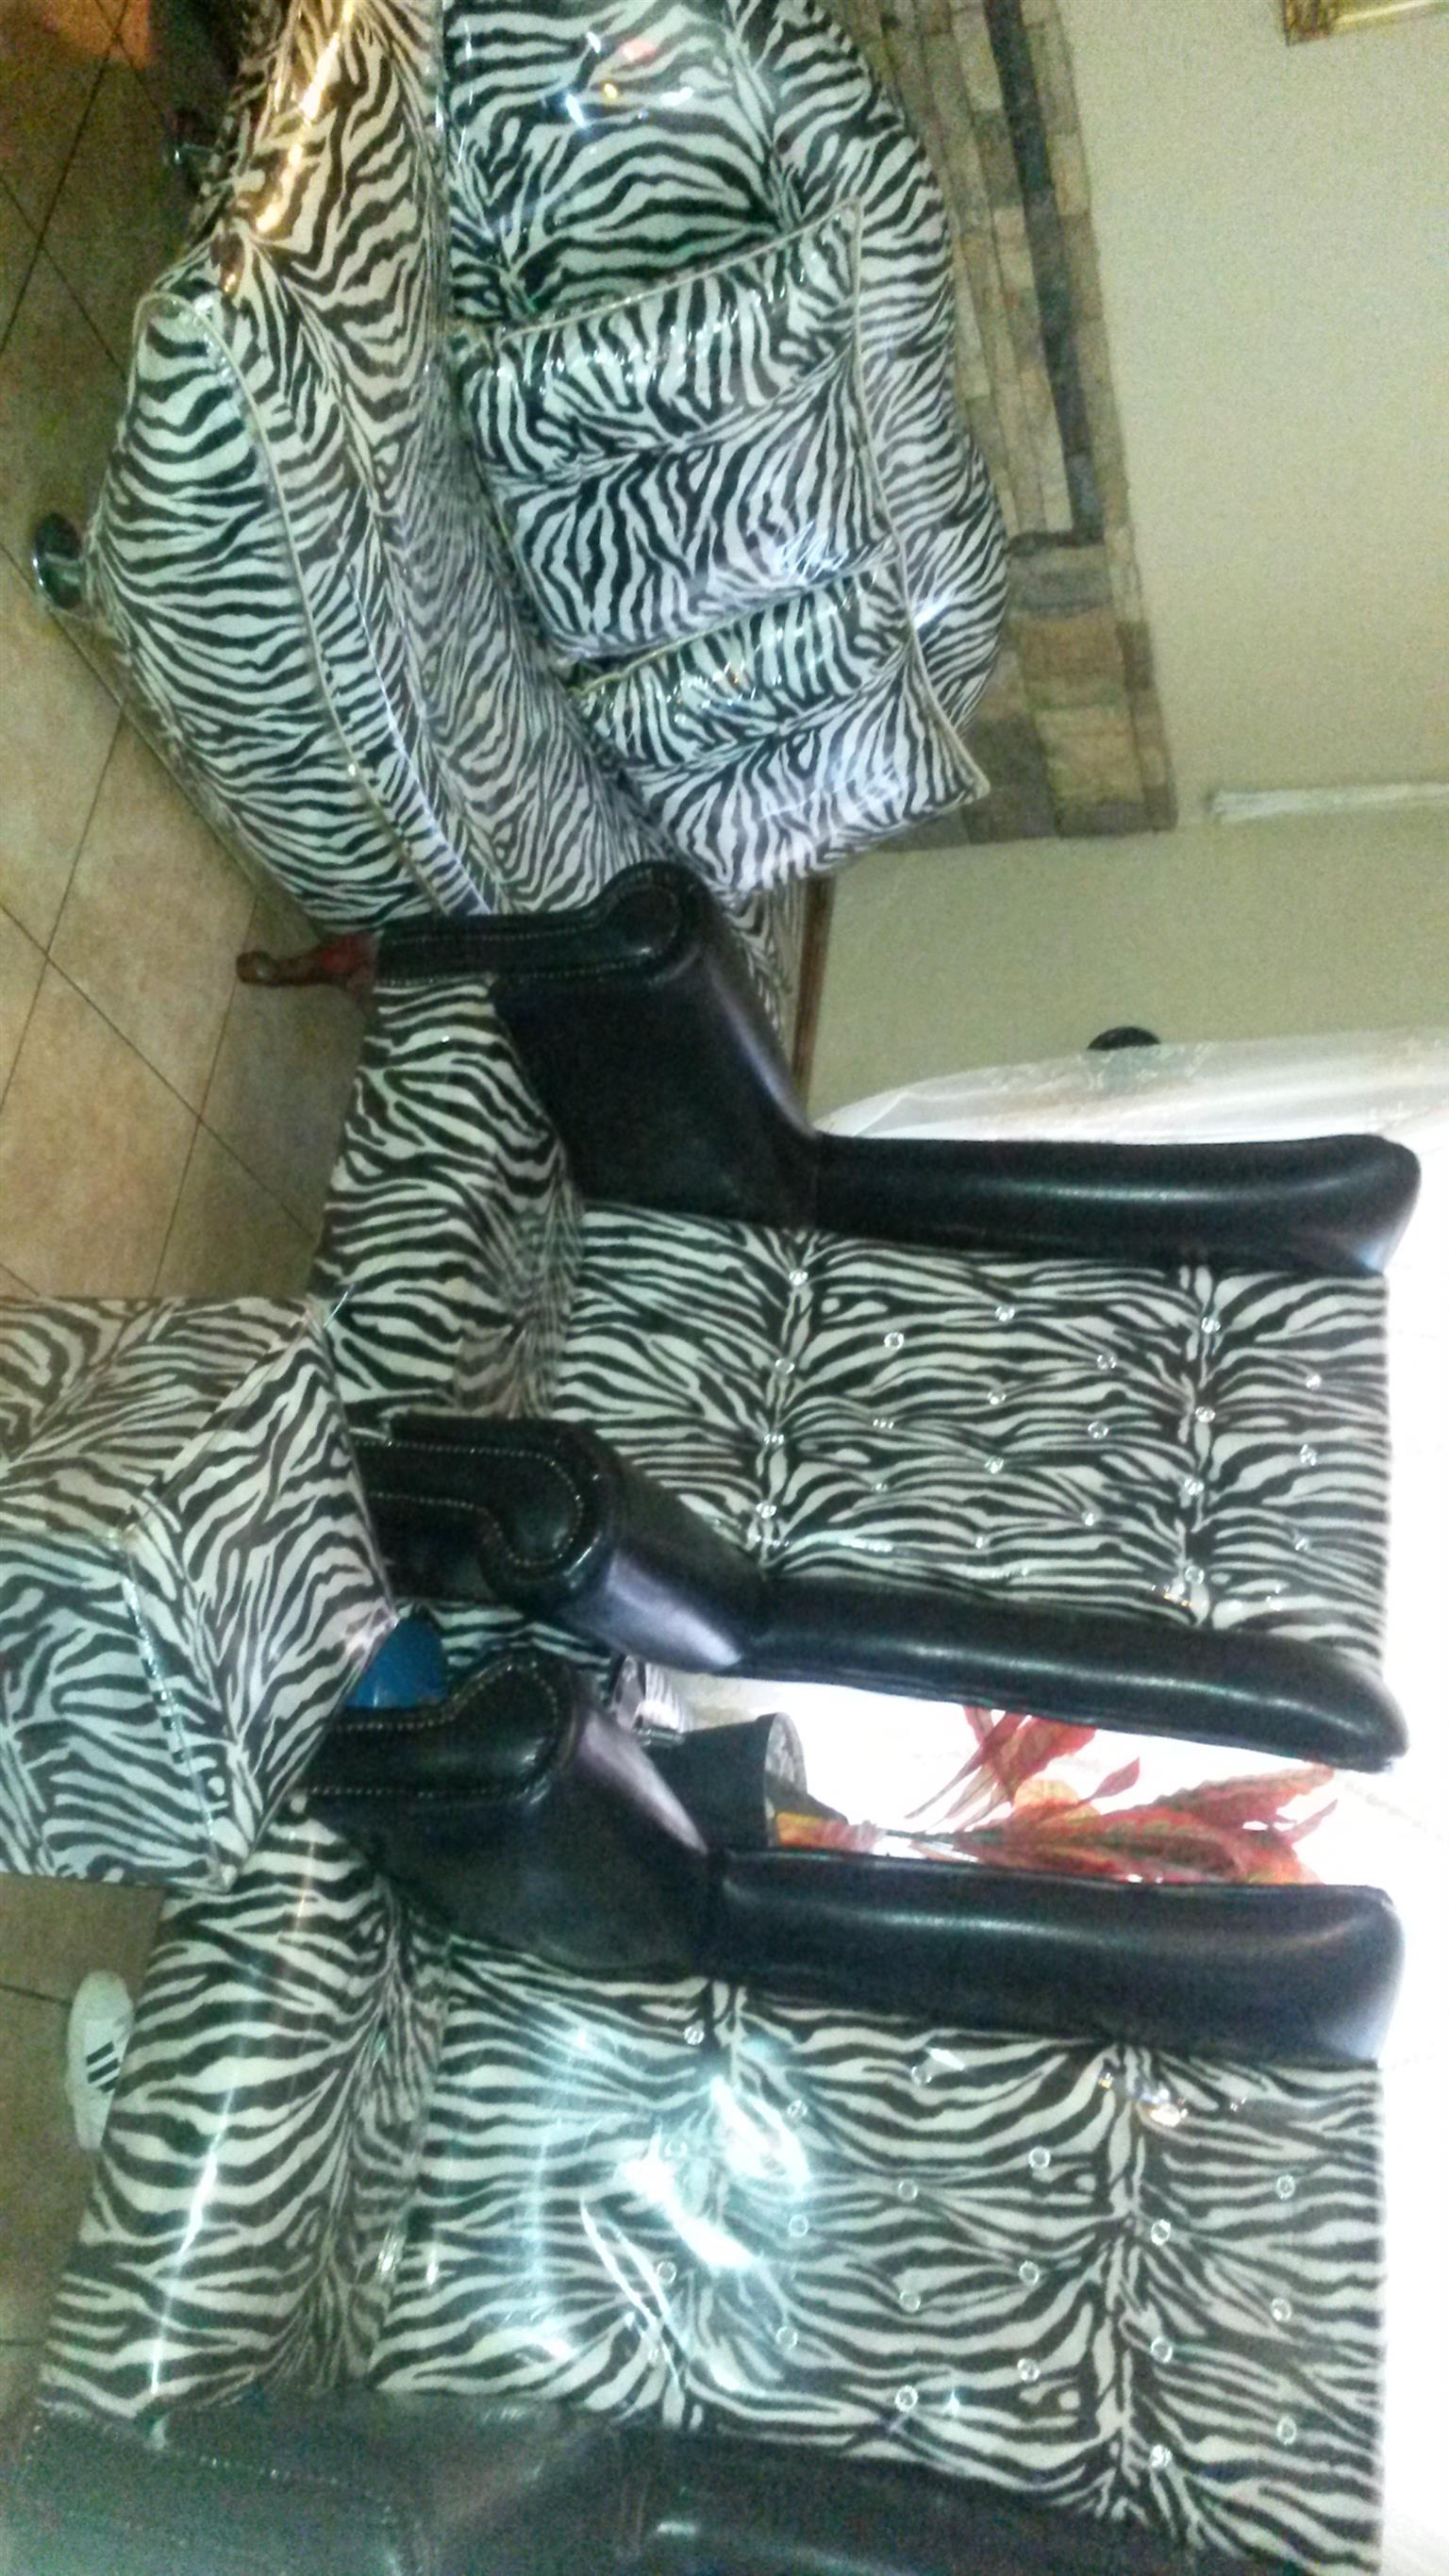 Zebra theme wedding chairs, a side couch with two pillows and a foot stool